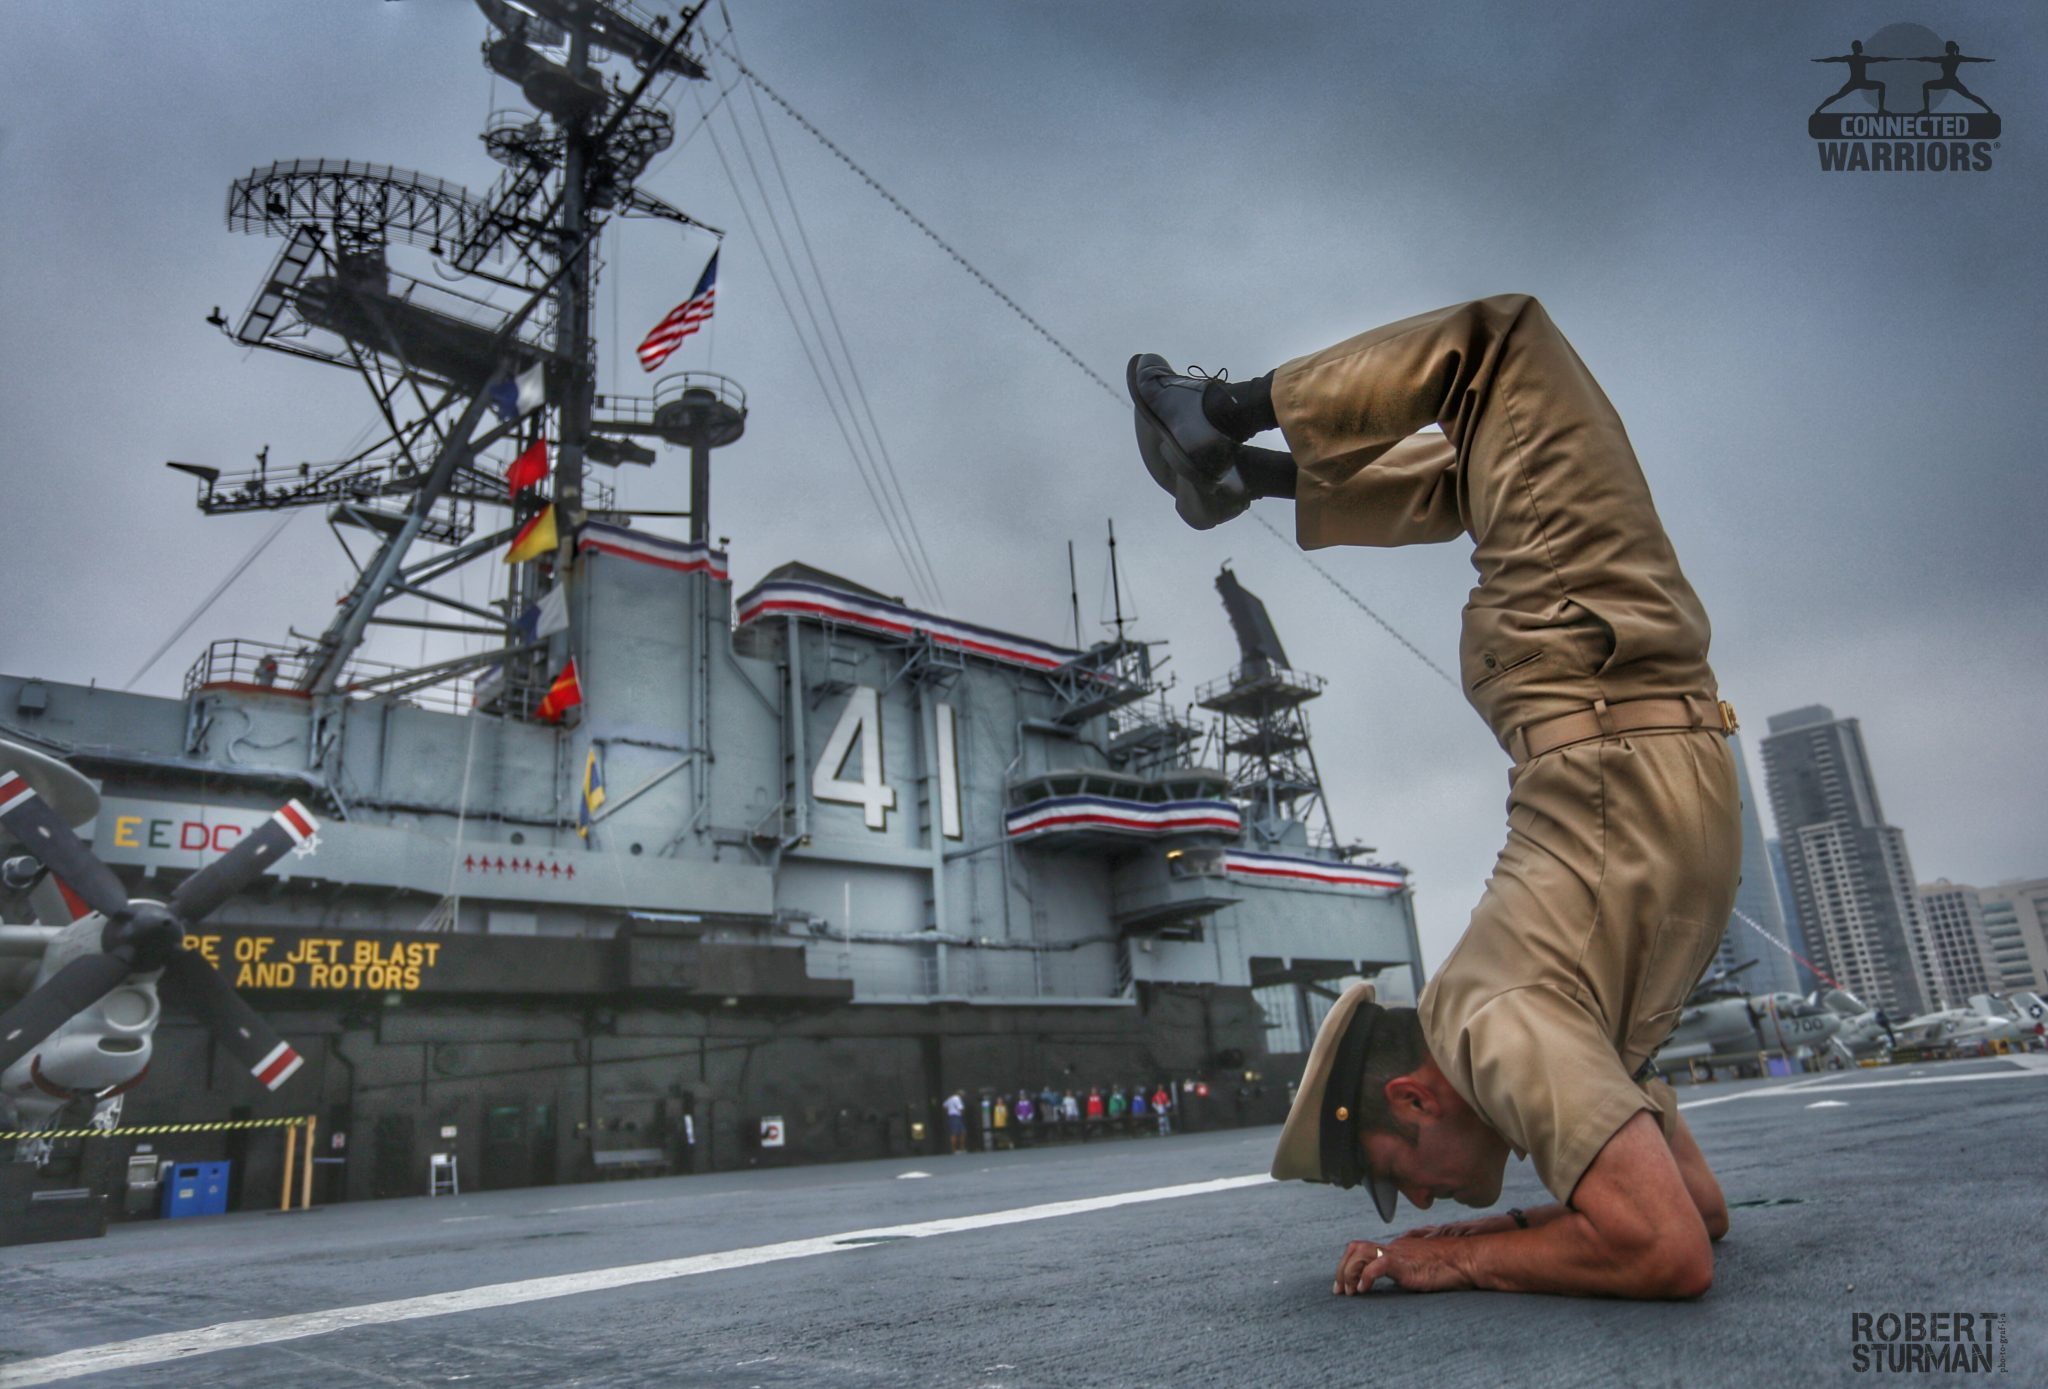 navy soldier in scorpion pose by boat